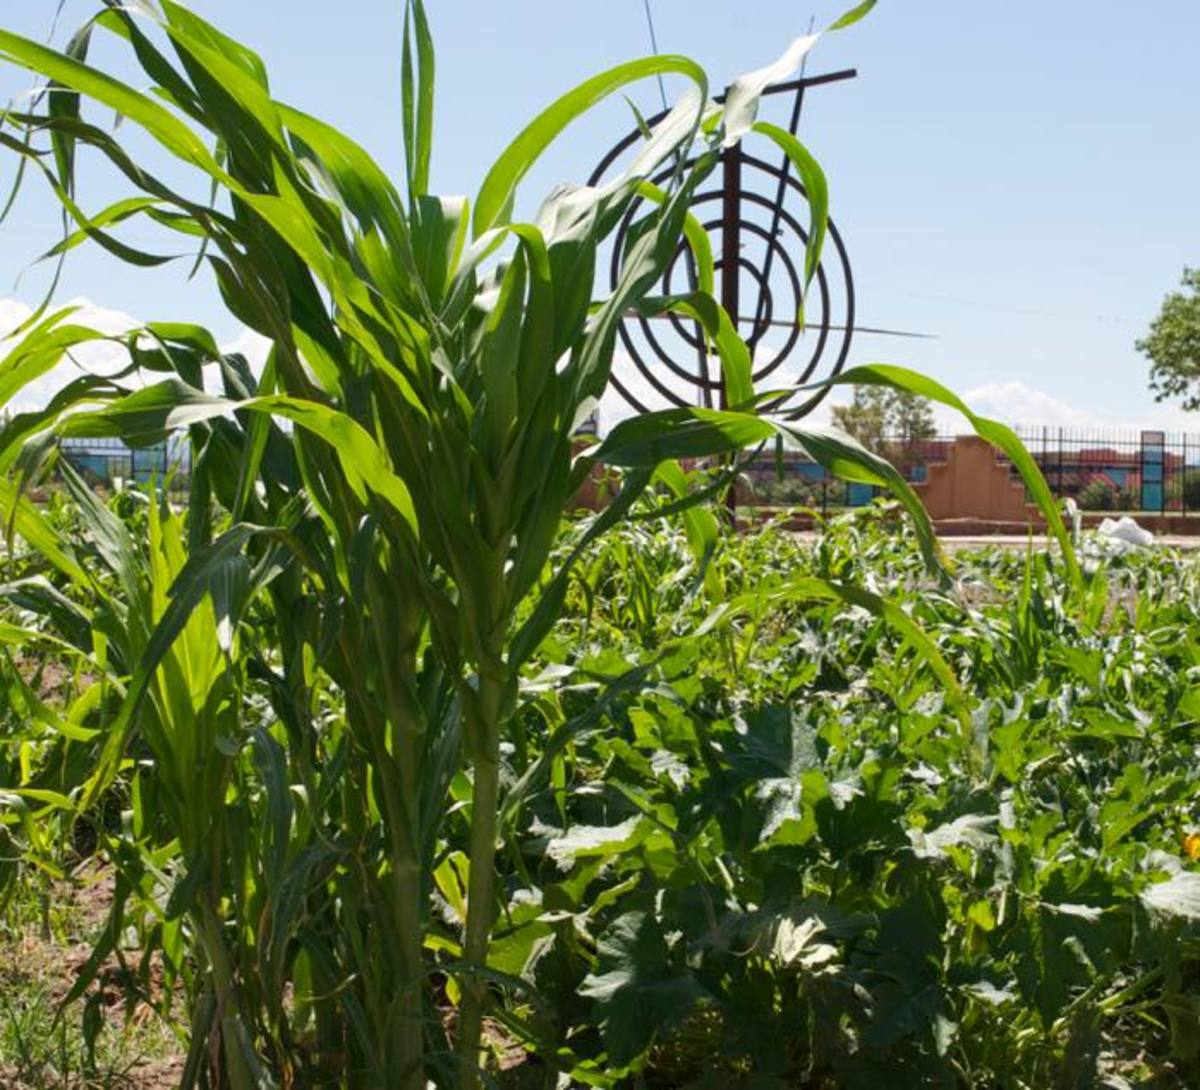 Tourists and locals can learn traditional agriculture practices in the Resilience Garden at the Indian Pueblo Cultural Center where one of the many crops is corn, one of the three sisters.